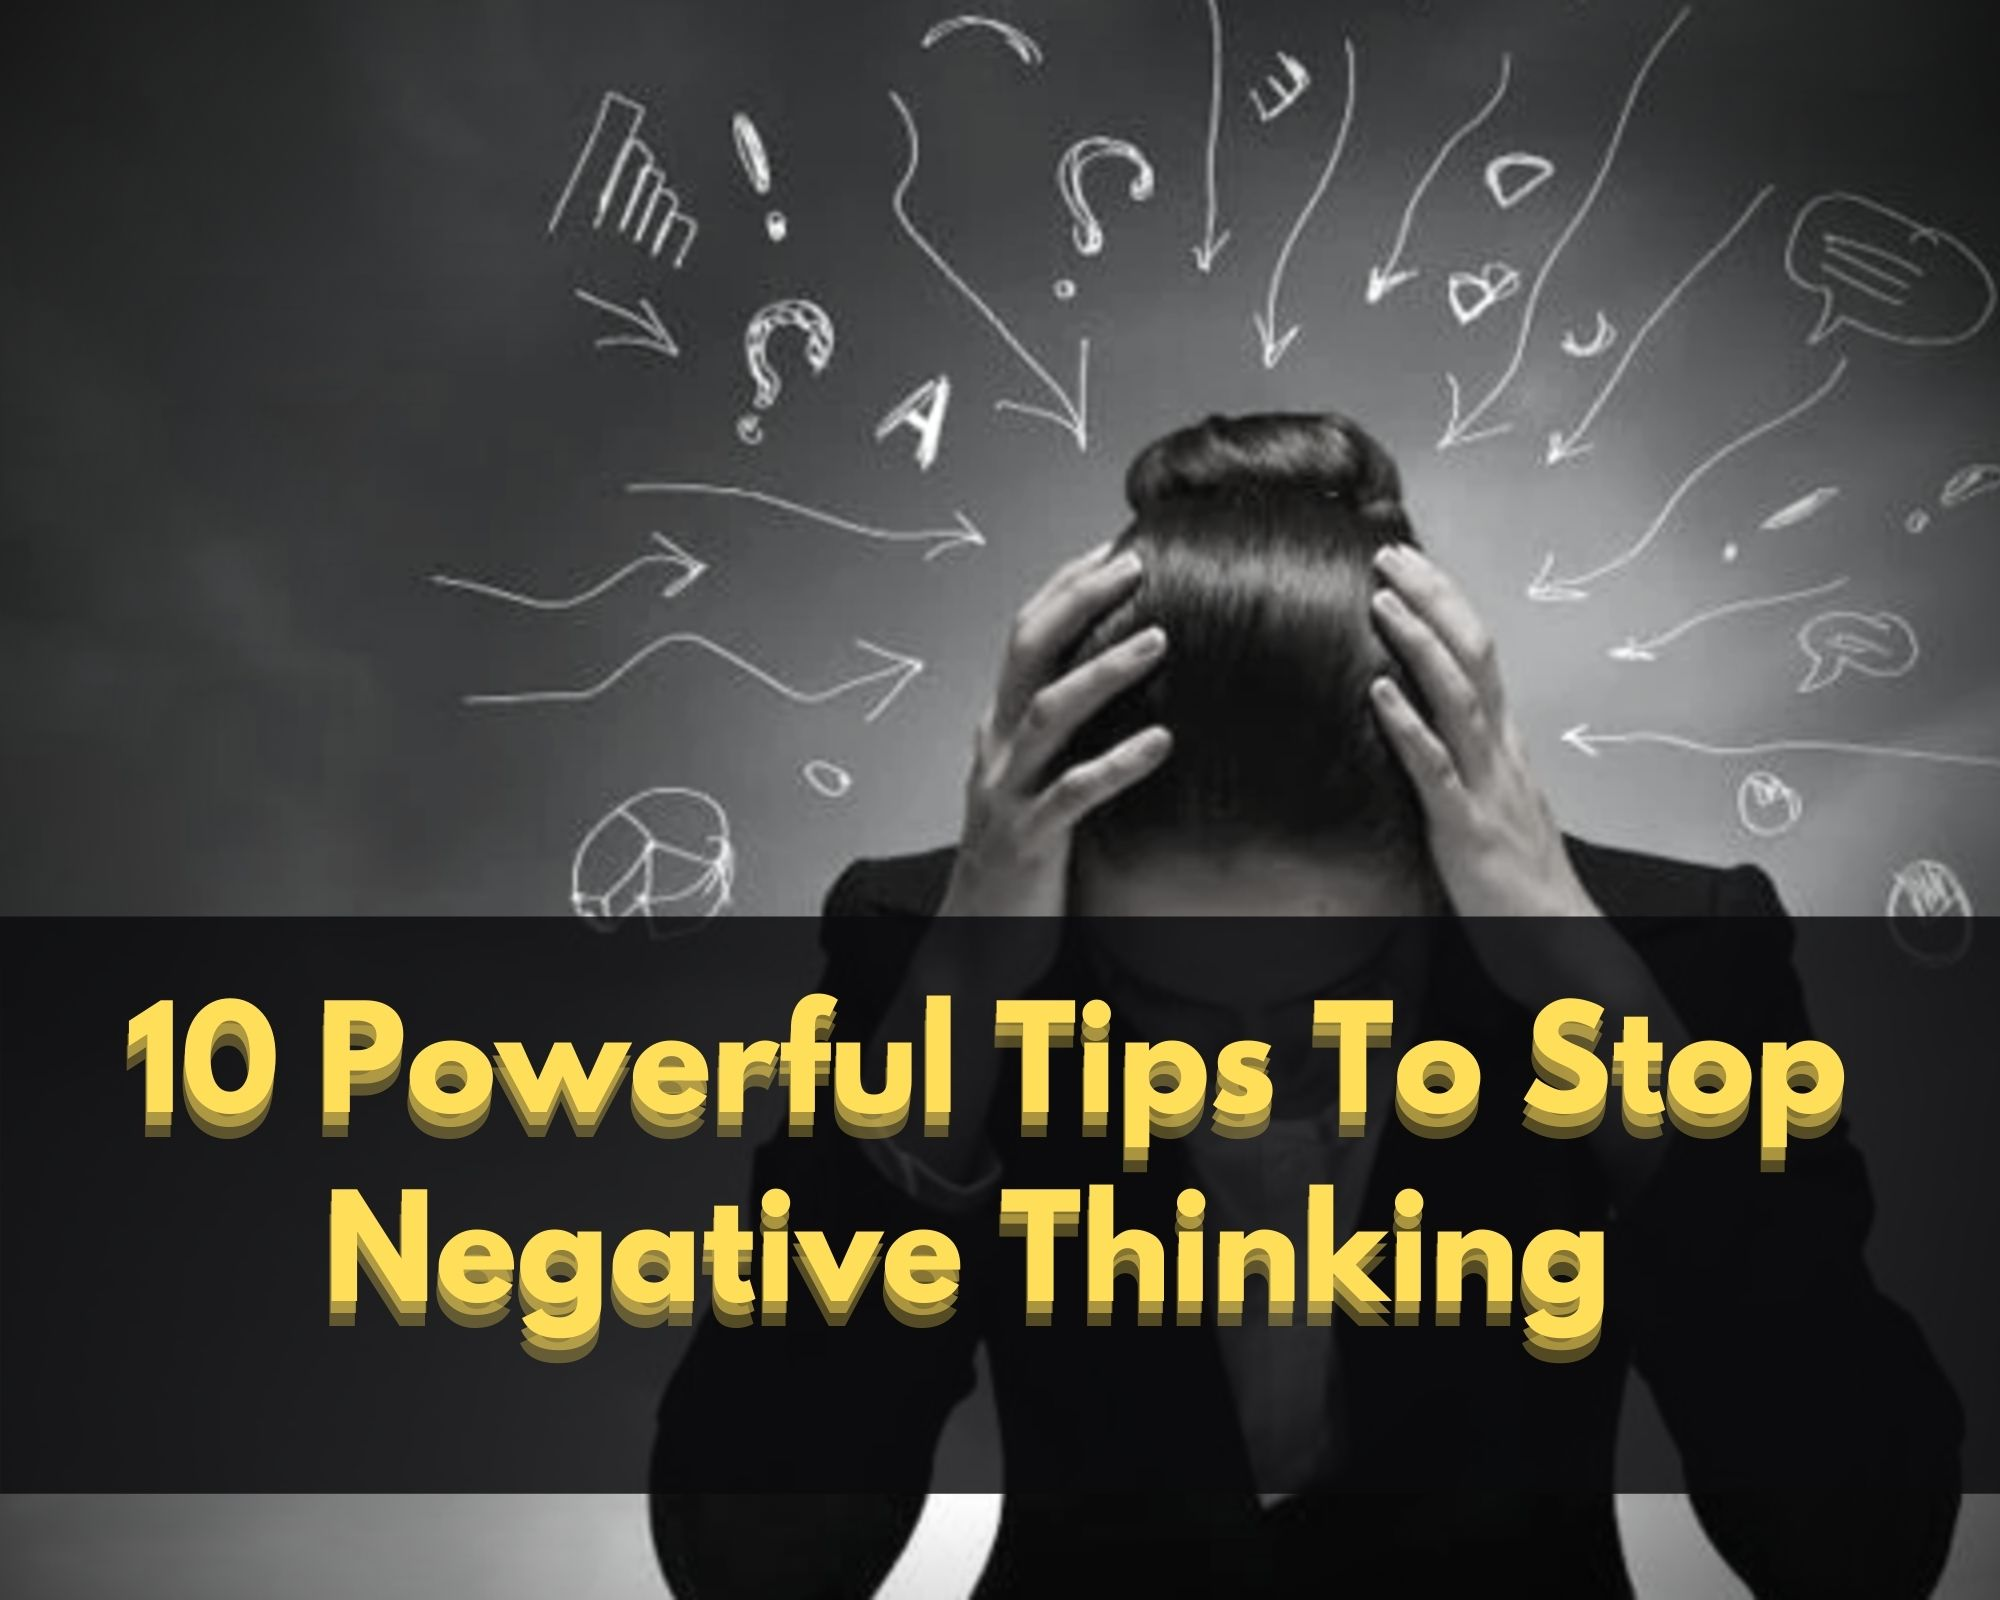 10 Powerful Tips To Stop Negative Thinking